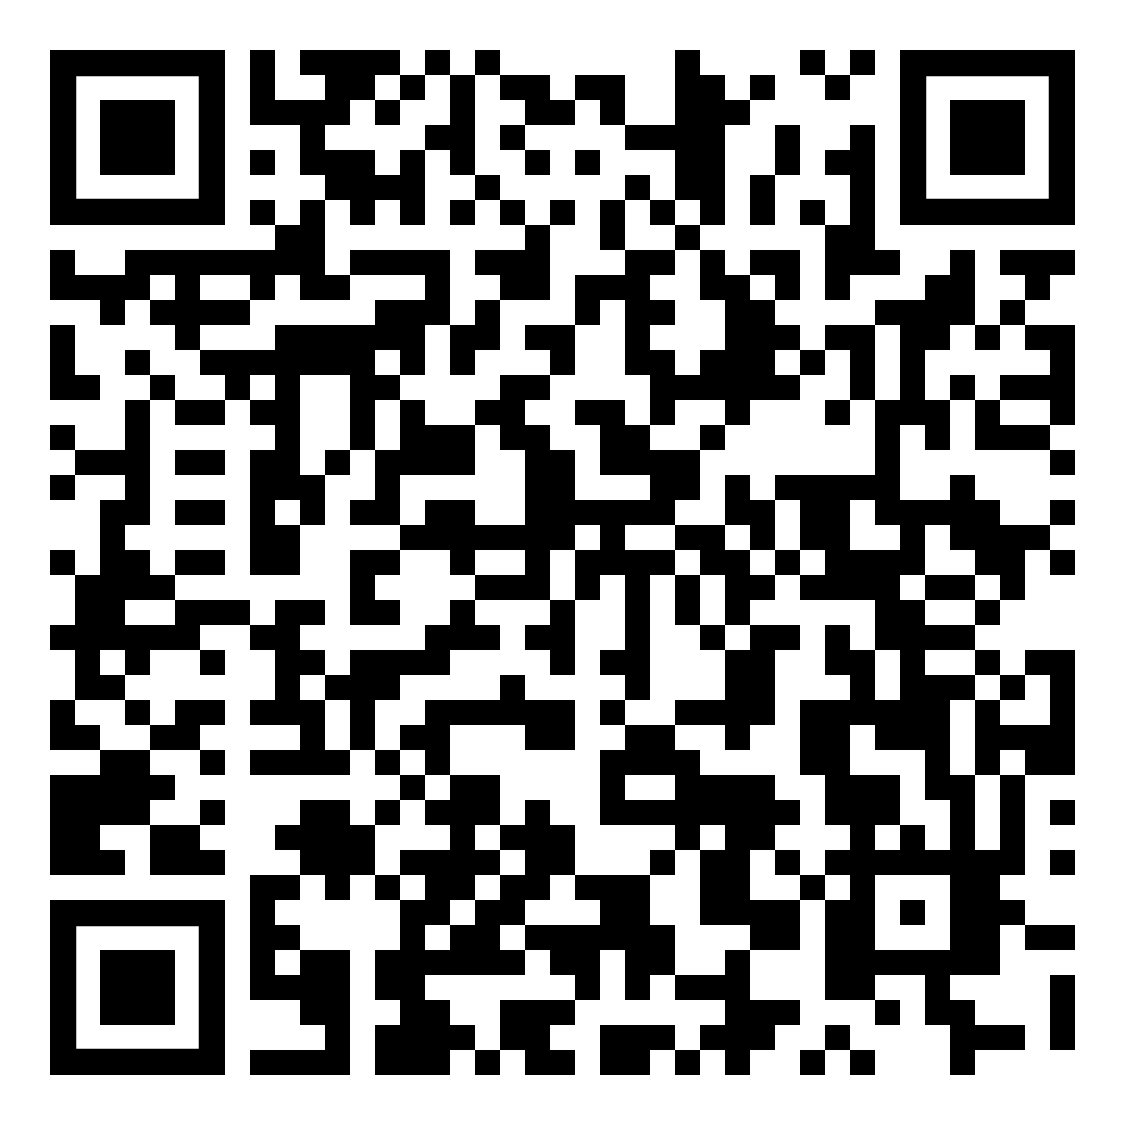 QR-Code for Semiconductor Oxides Material Properties Chart